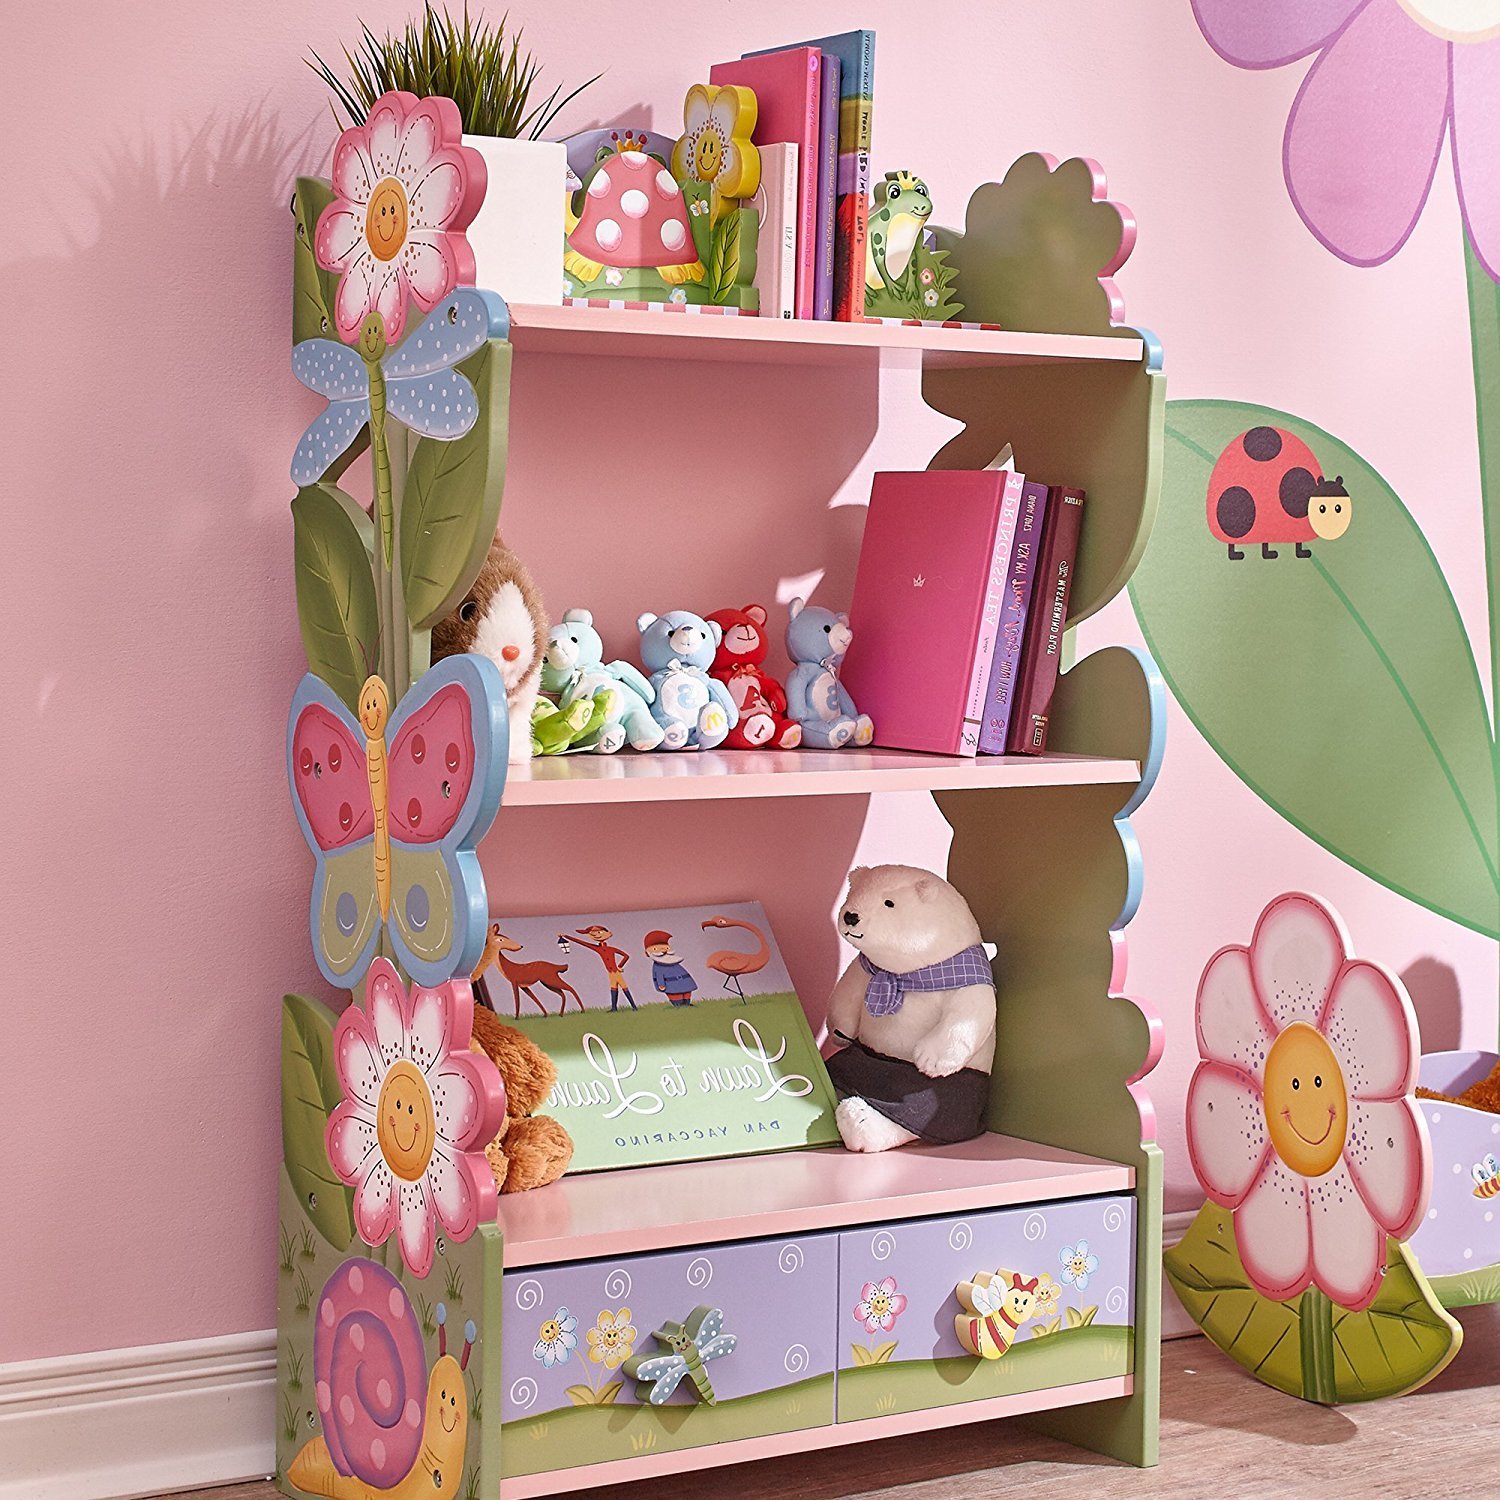 Fantasy Fields - Magic Garden themed Pink Book Case Kids Wooden Bookcase with Storage Drawer| Hand Crafted & Hand Painted Bookshelf | Child Friendly Water-based Paint Fantasy Fields By Teamson W-7500A